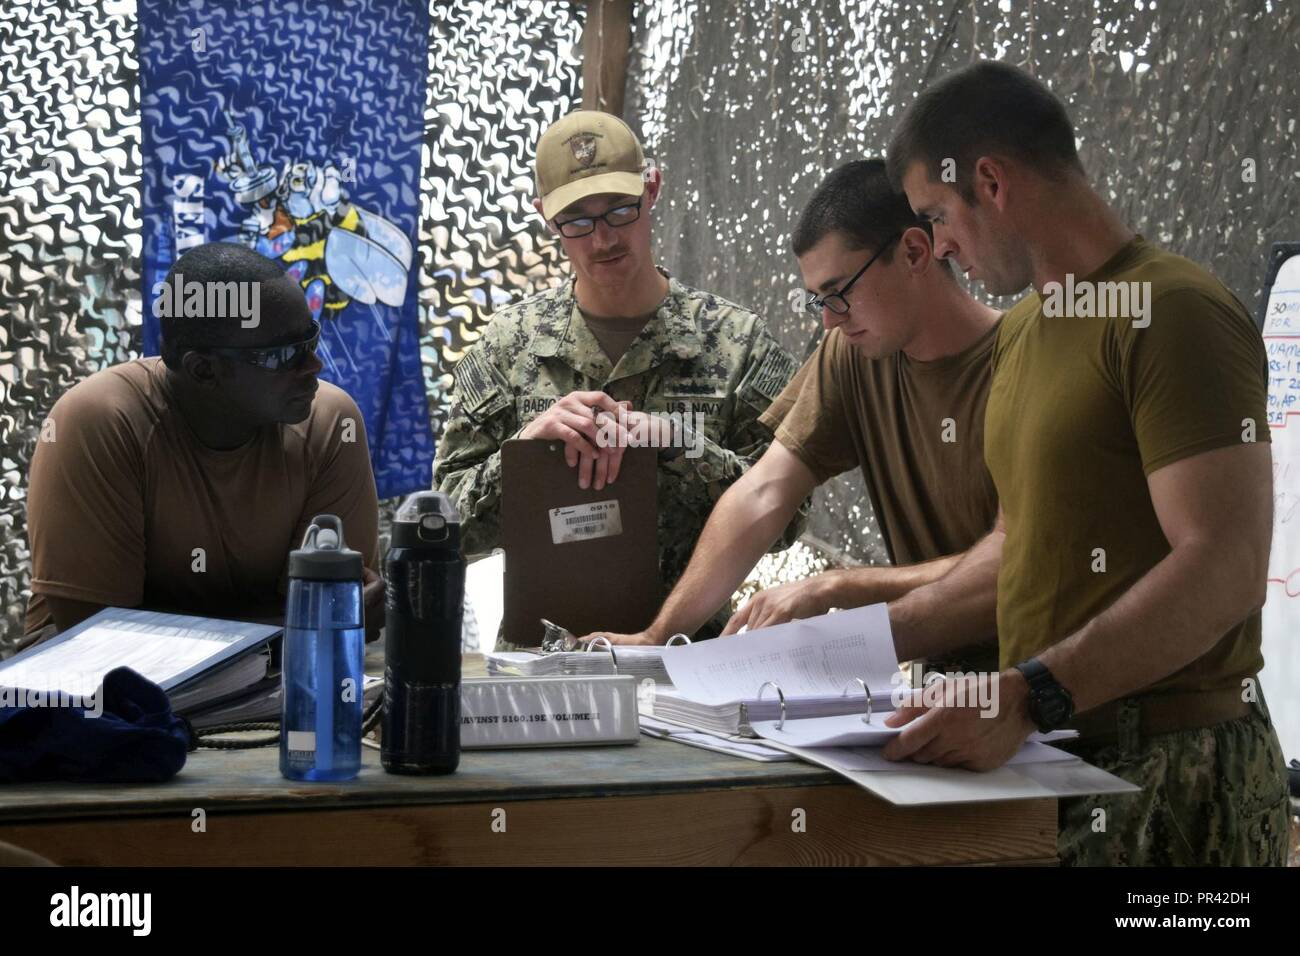 CAMP LEMMONIER, Djibouti (July 27, 2017) Sailors assigned to Coastal Riverine Squadron (CRS) 1, review maintenance procedures in preparation for an upcoming inspection at Camp Lemonnier, Djibouti. Coastal riverine force are a core Navy capability that provides high value asset protection and maritime security operations in coastal and inland waterways. Stock Photo